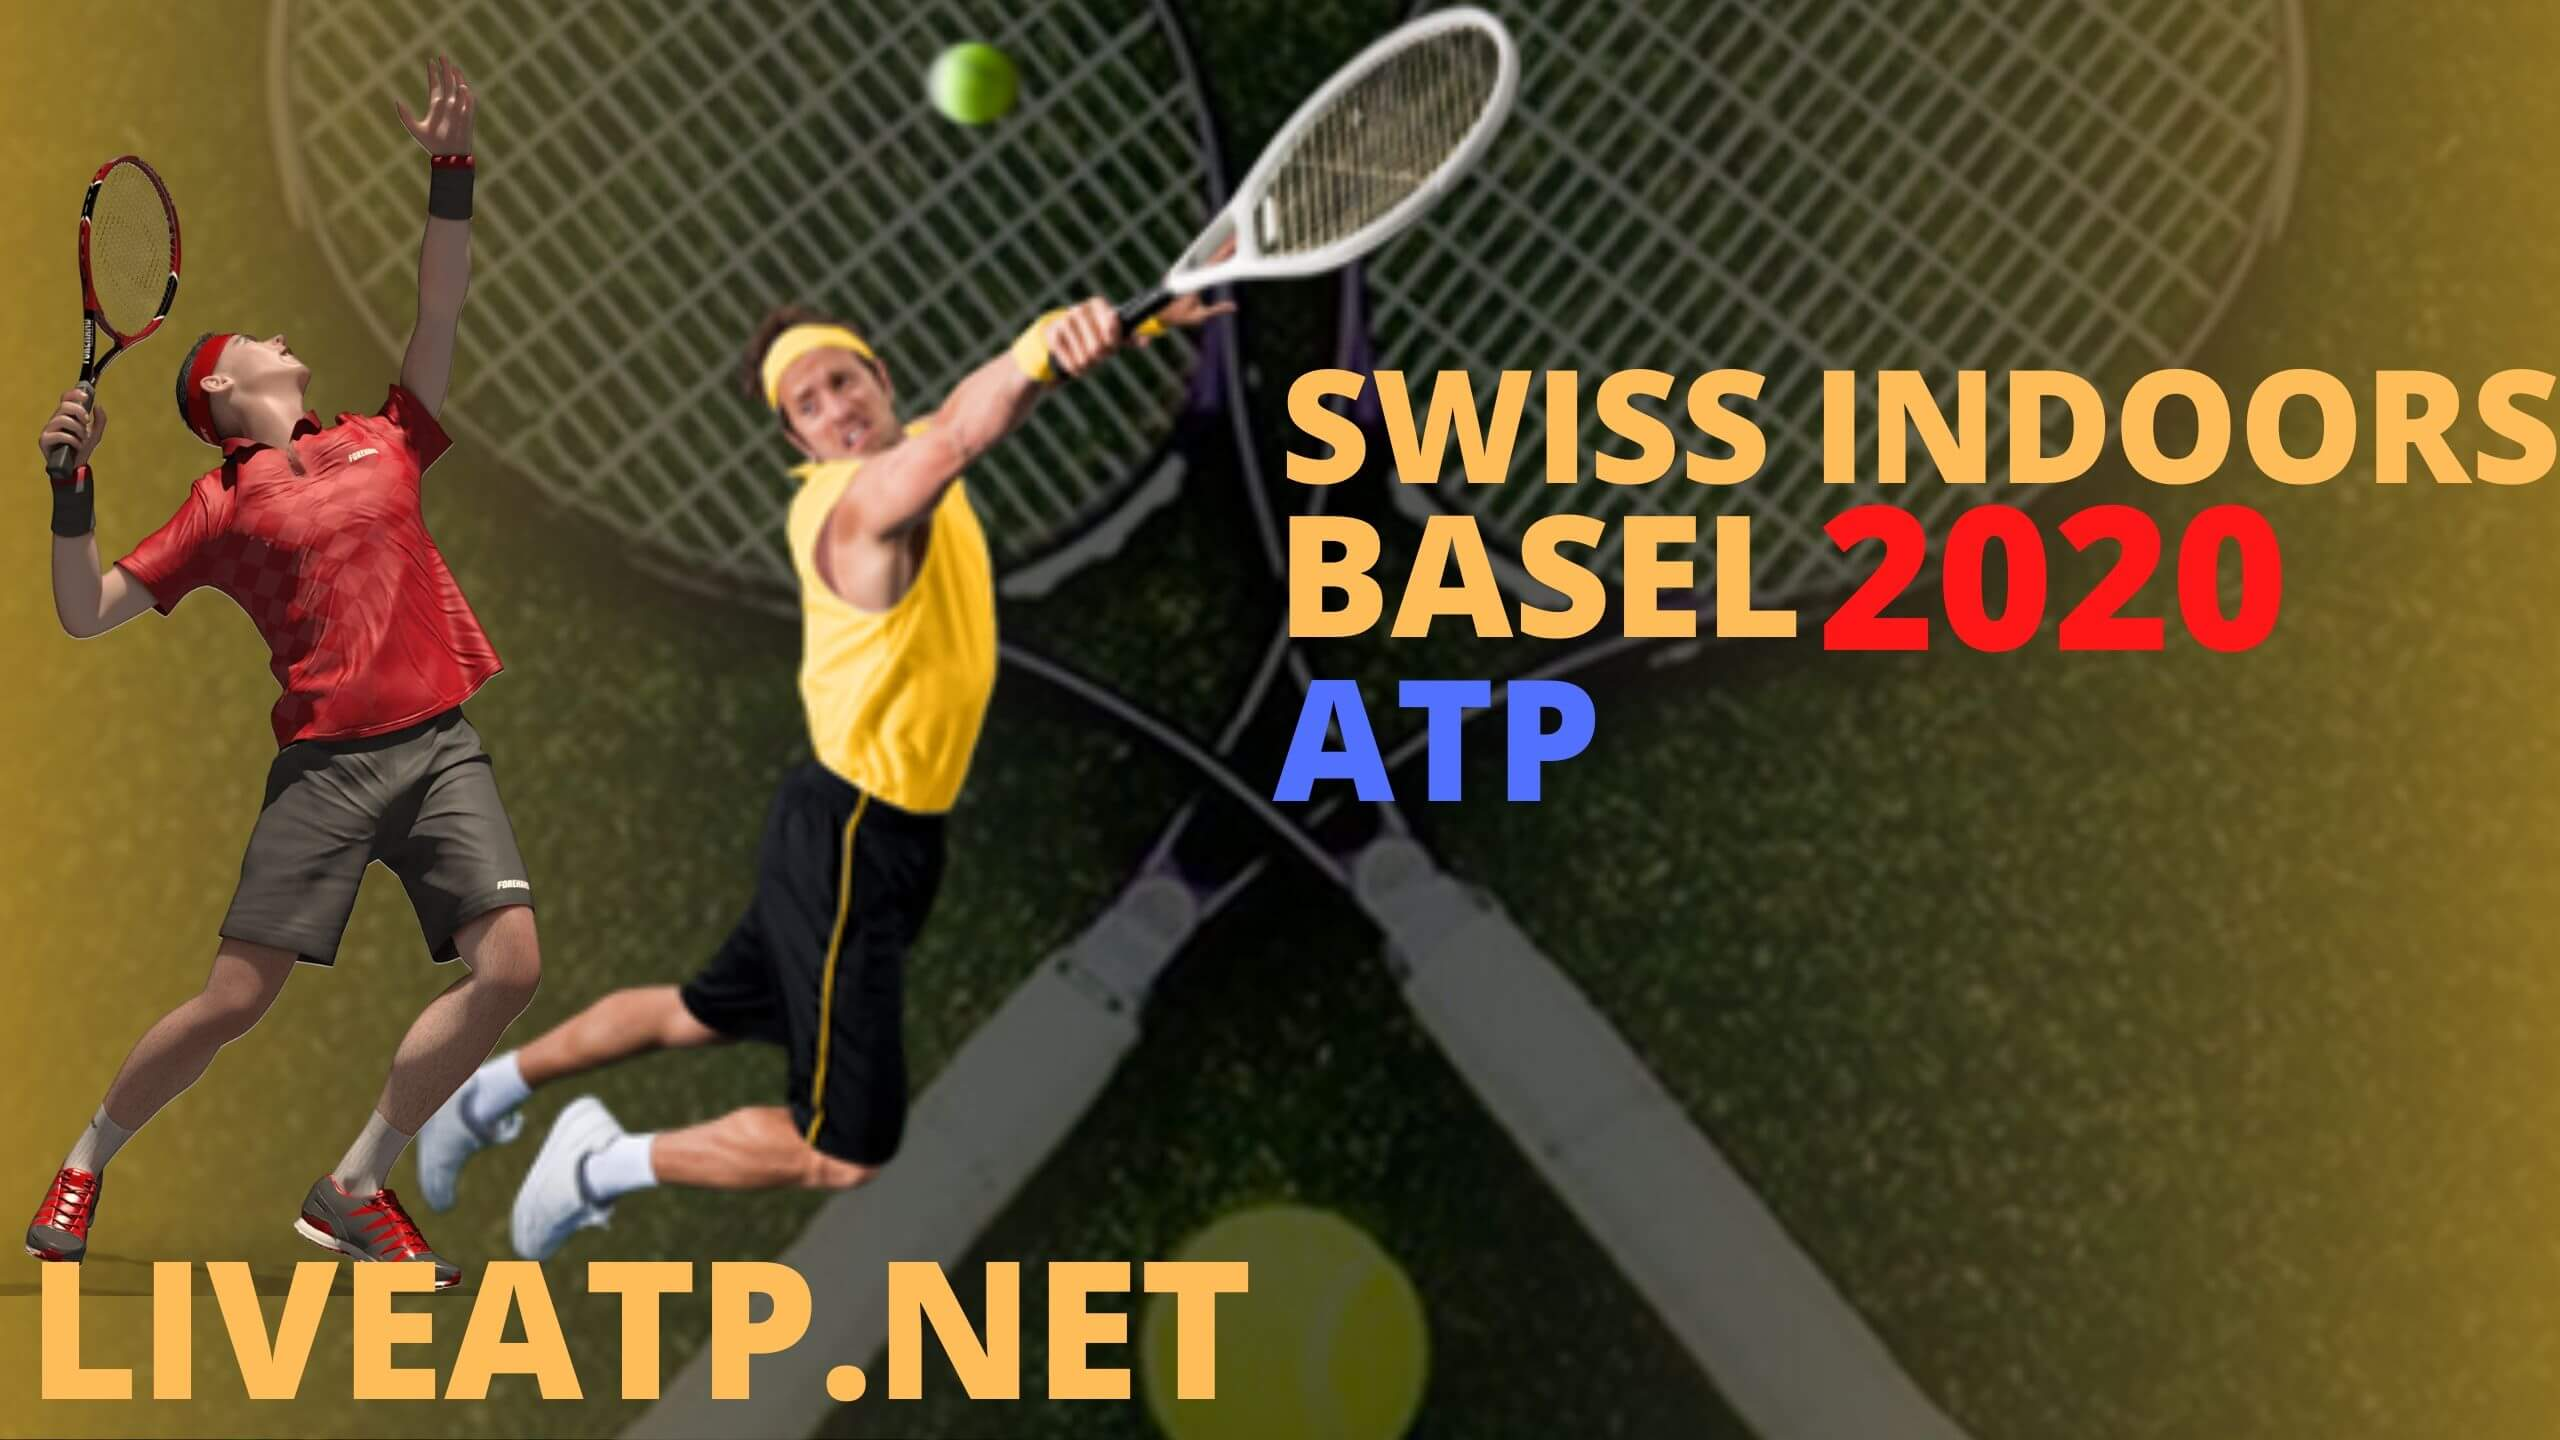 Swiss Indoors Basel Live Stream 2020 | Day 5